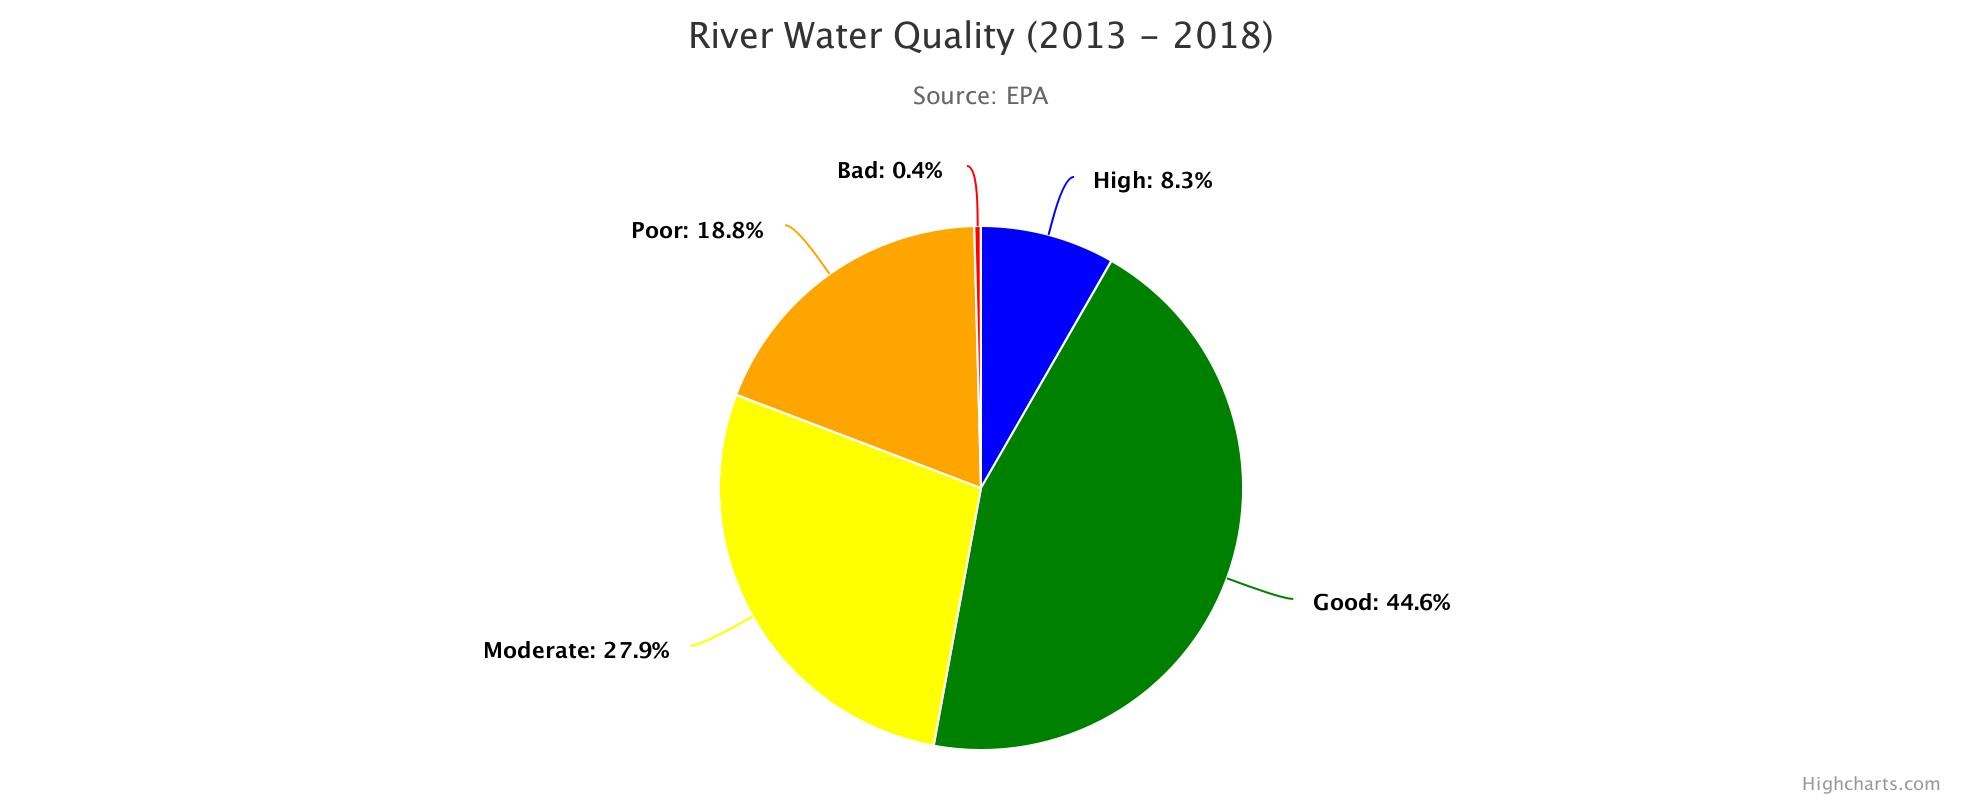 River Water Quality 2013 - 2018 HighChart Image